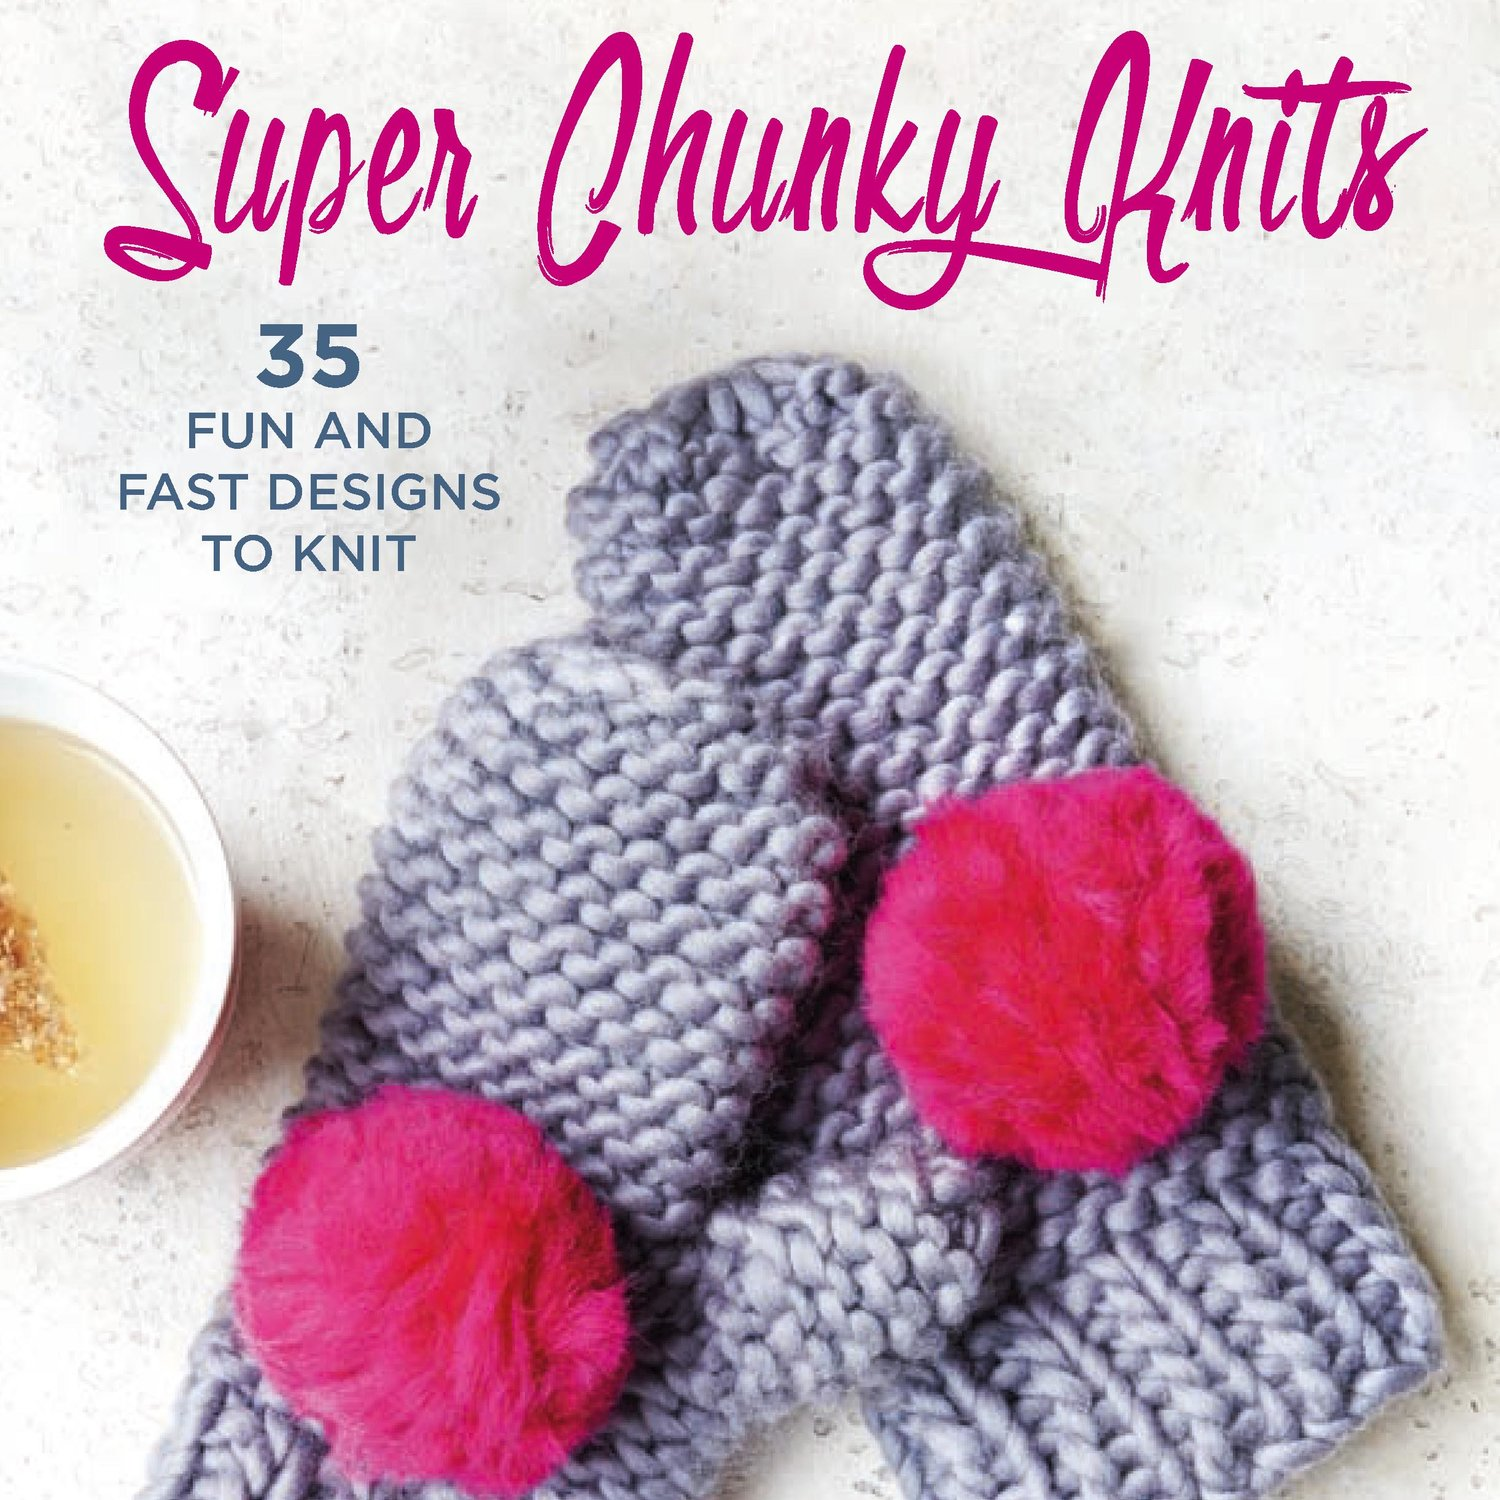 Super Chunky Knits Book Lauren Aston Designs